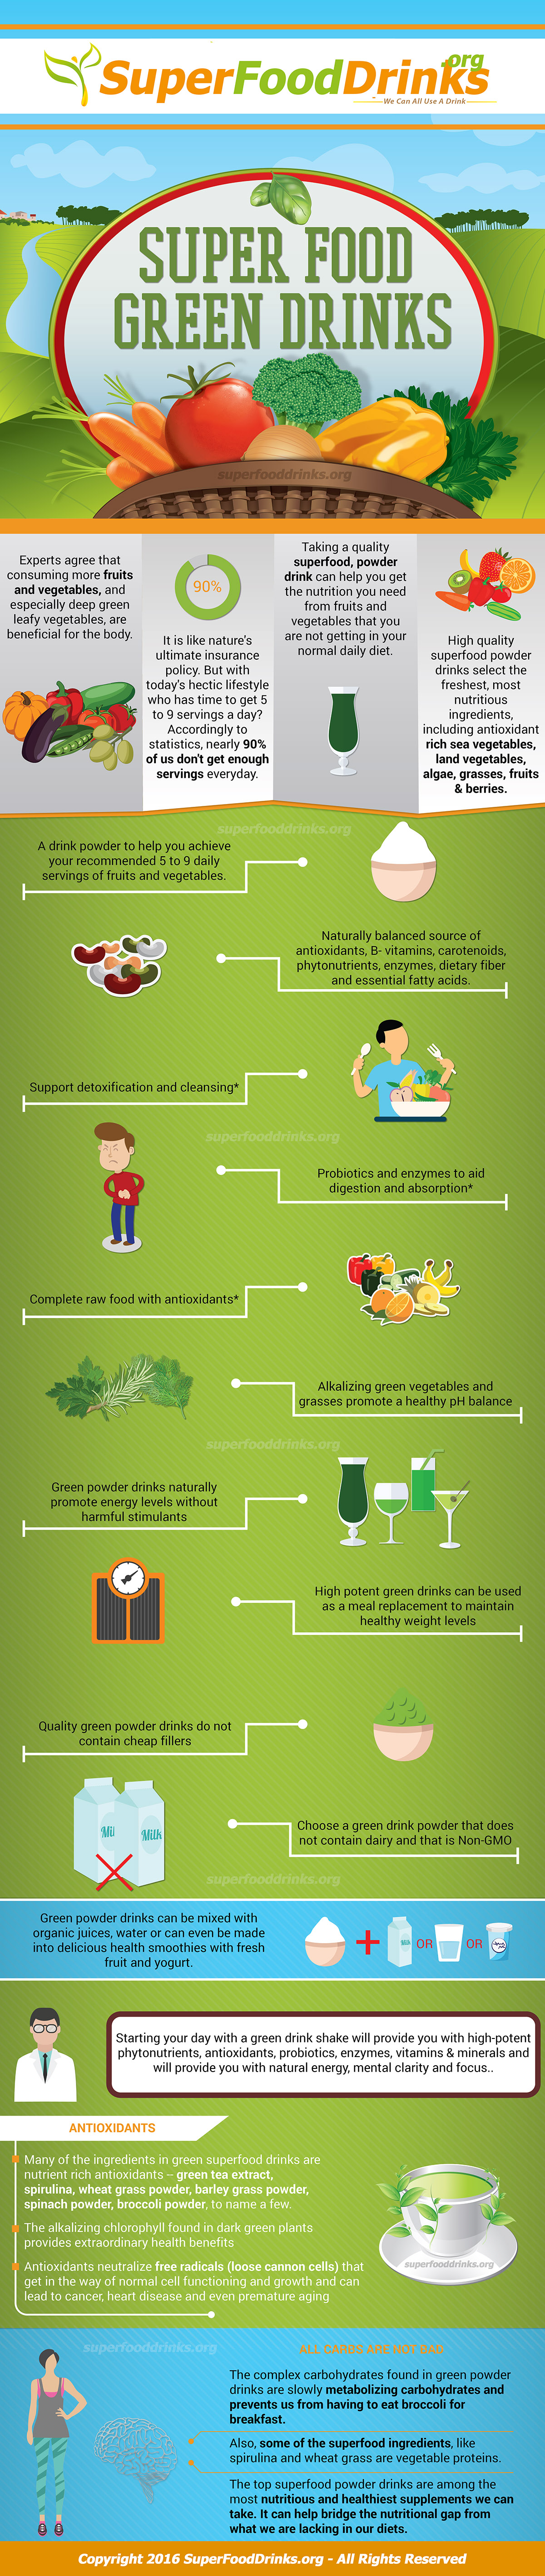 How Superfoods Work